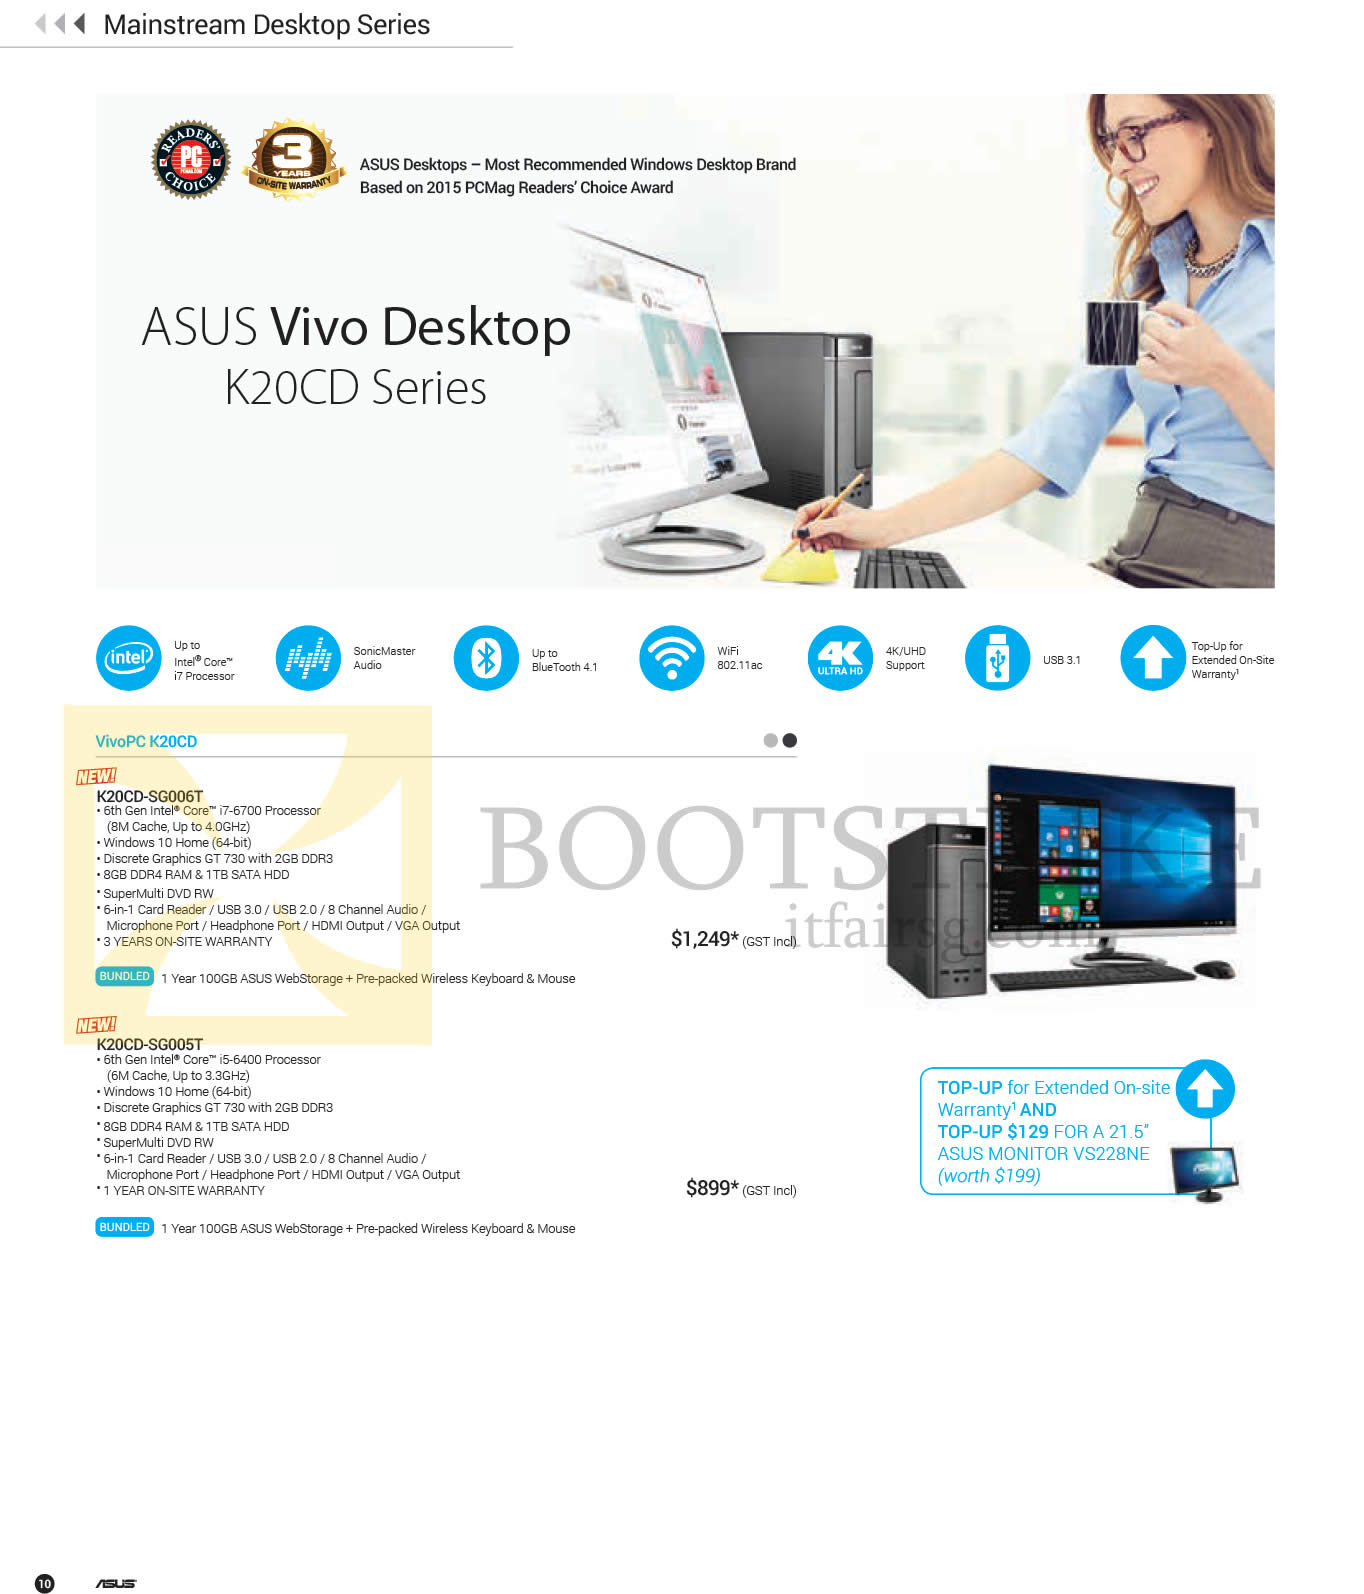 PC SHOW 2016 price list image brochure of ASUS Desktop PCs Vivo K20CD Series, K20CD-SG006T, K20CD-SG005T